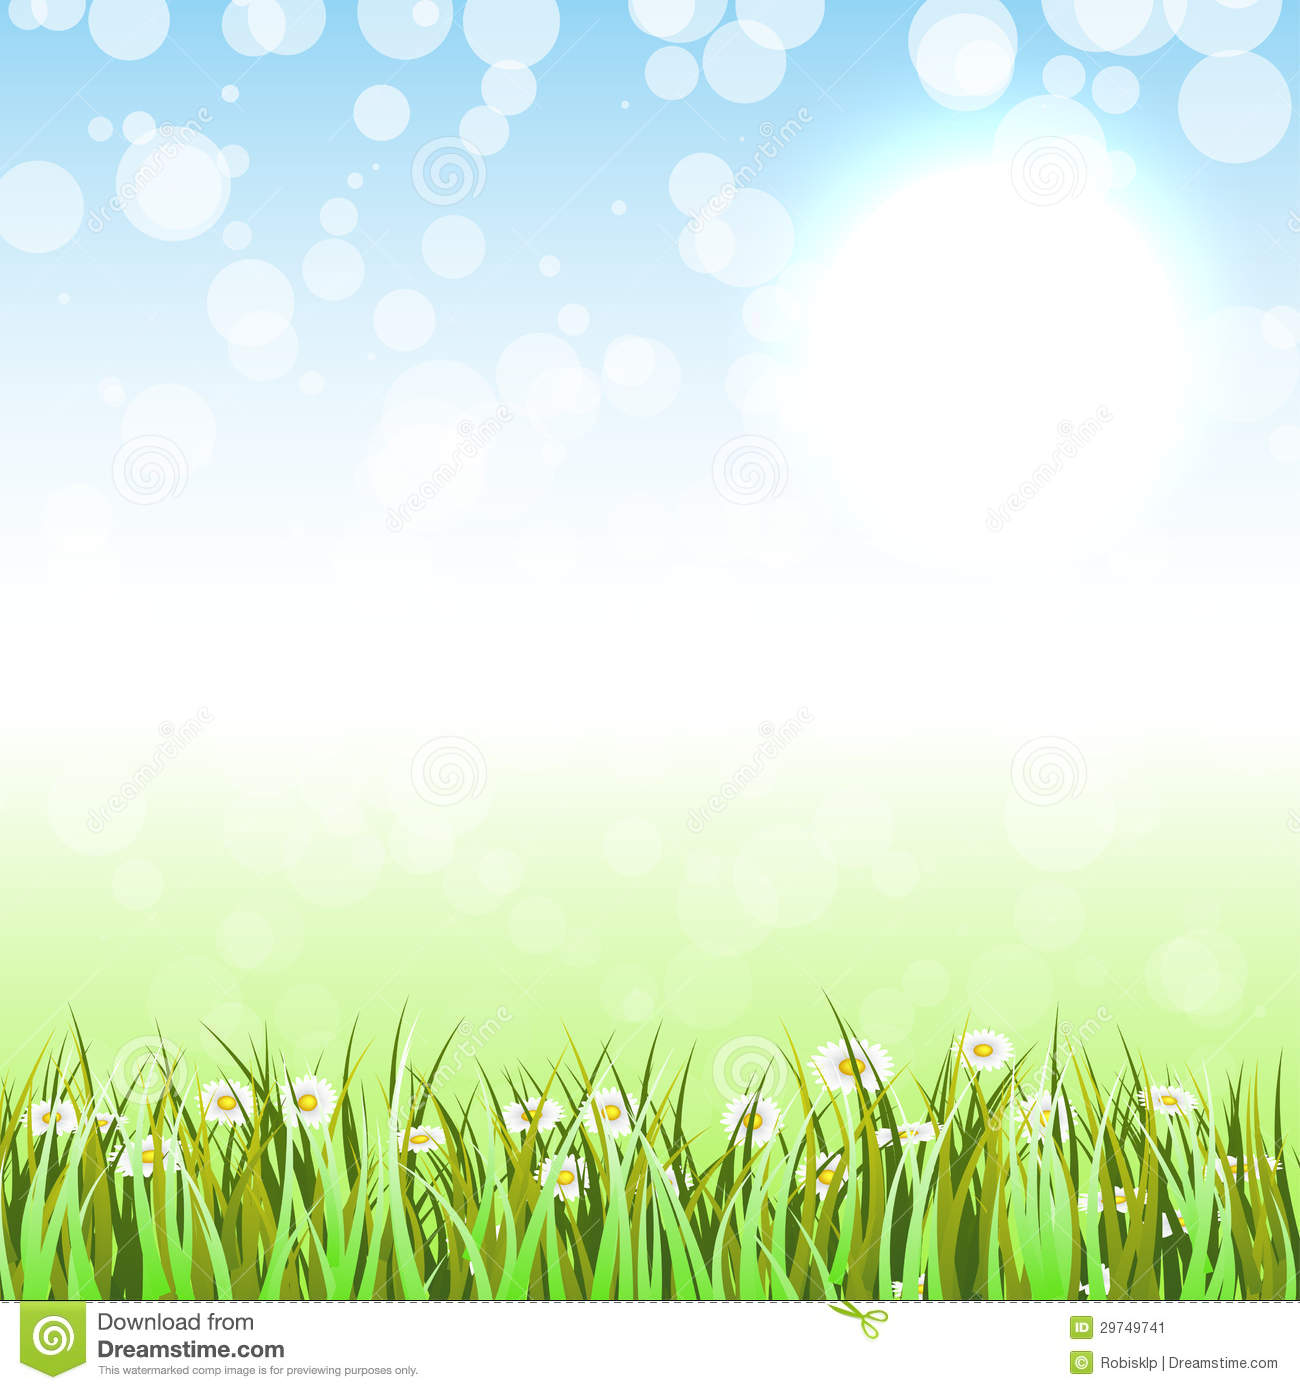 background image clipart - photo #37